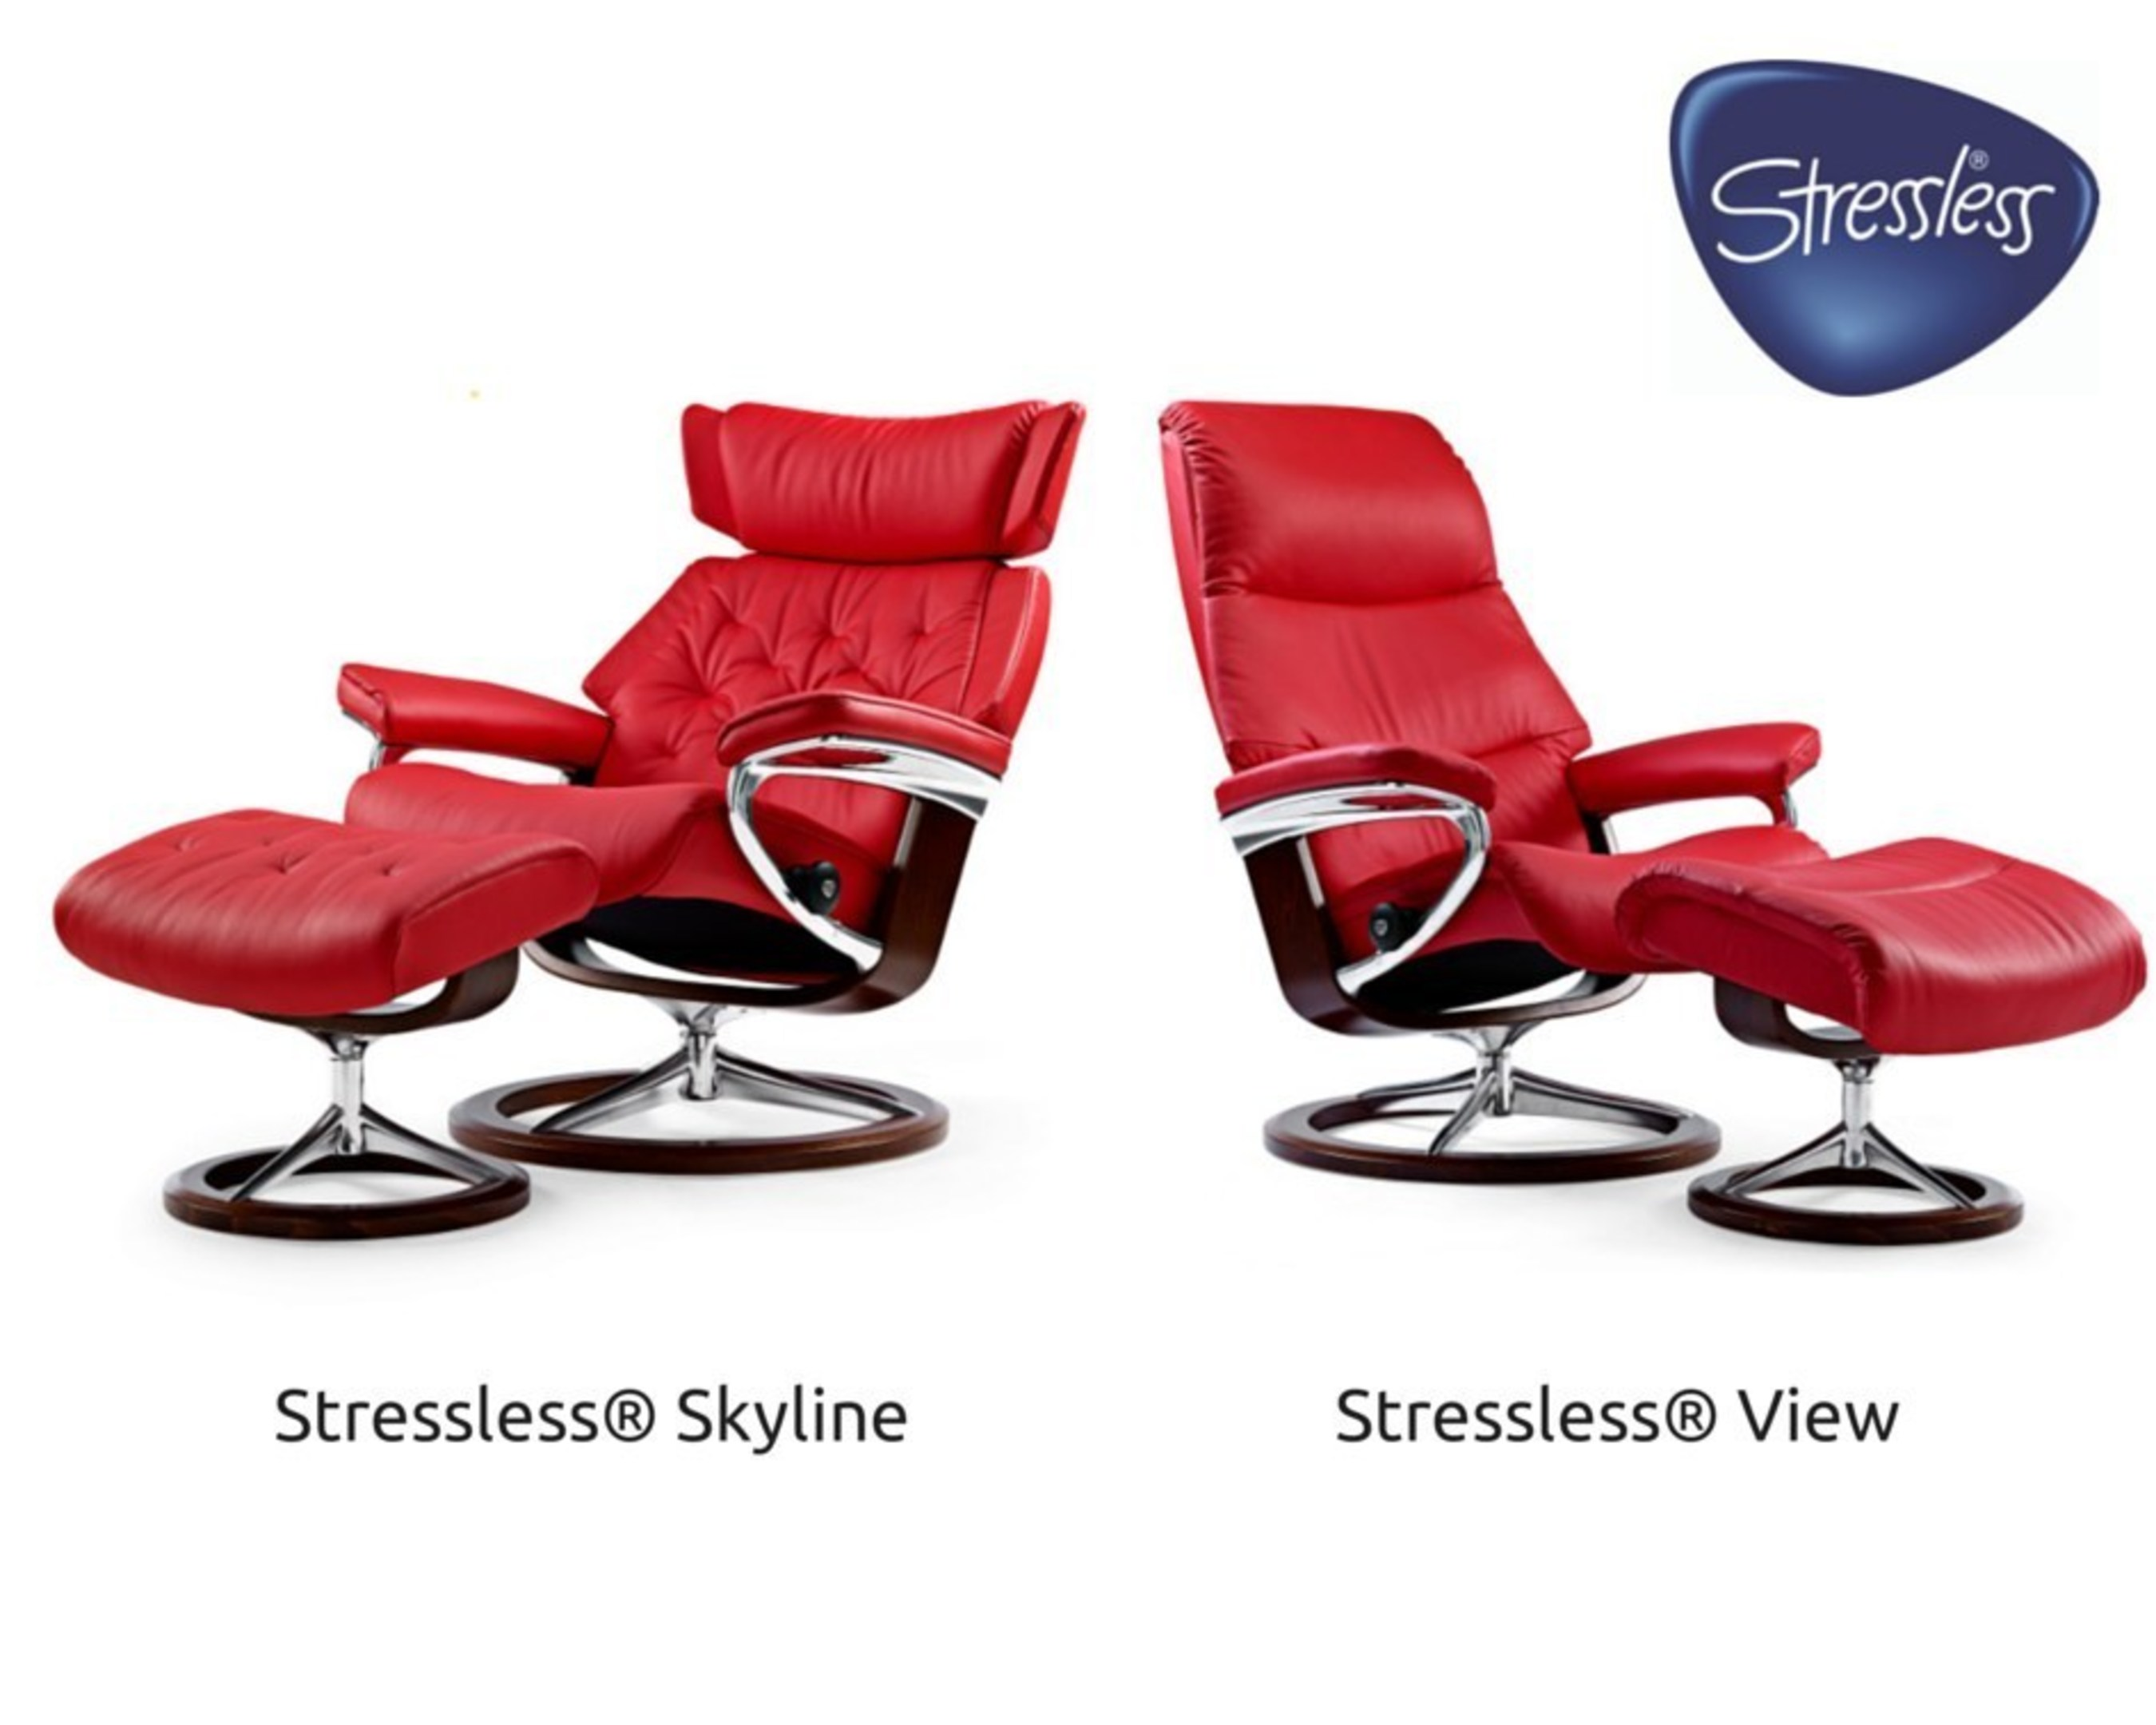 Stressless Sofa Dealers Nordic Design Drives New Look For Stressless